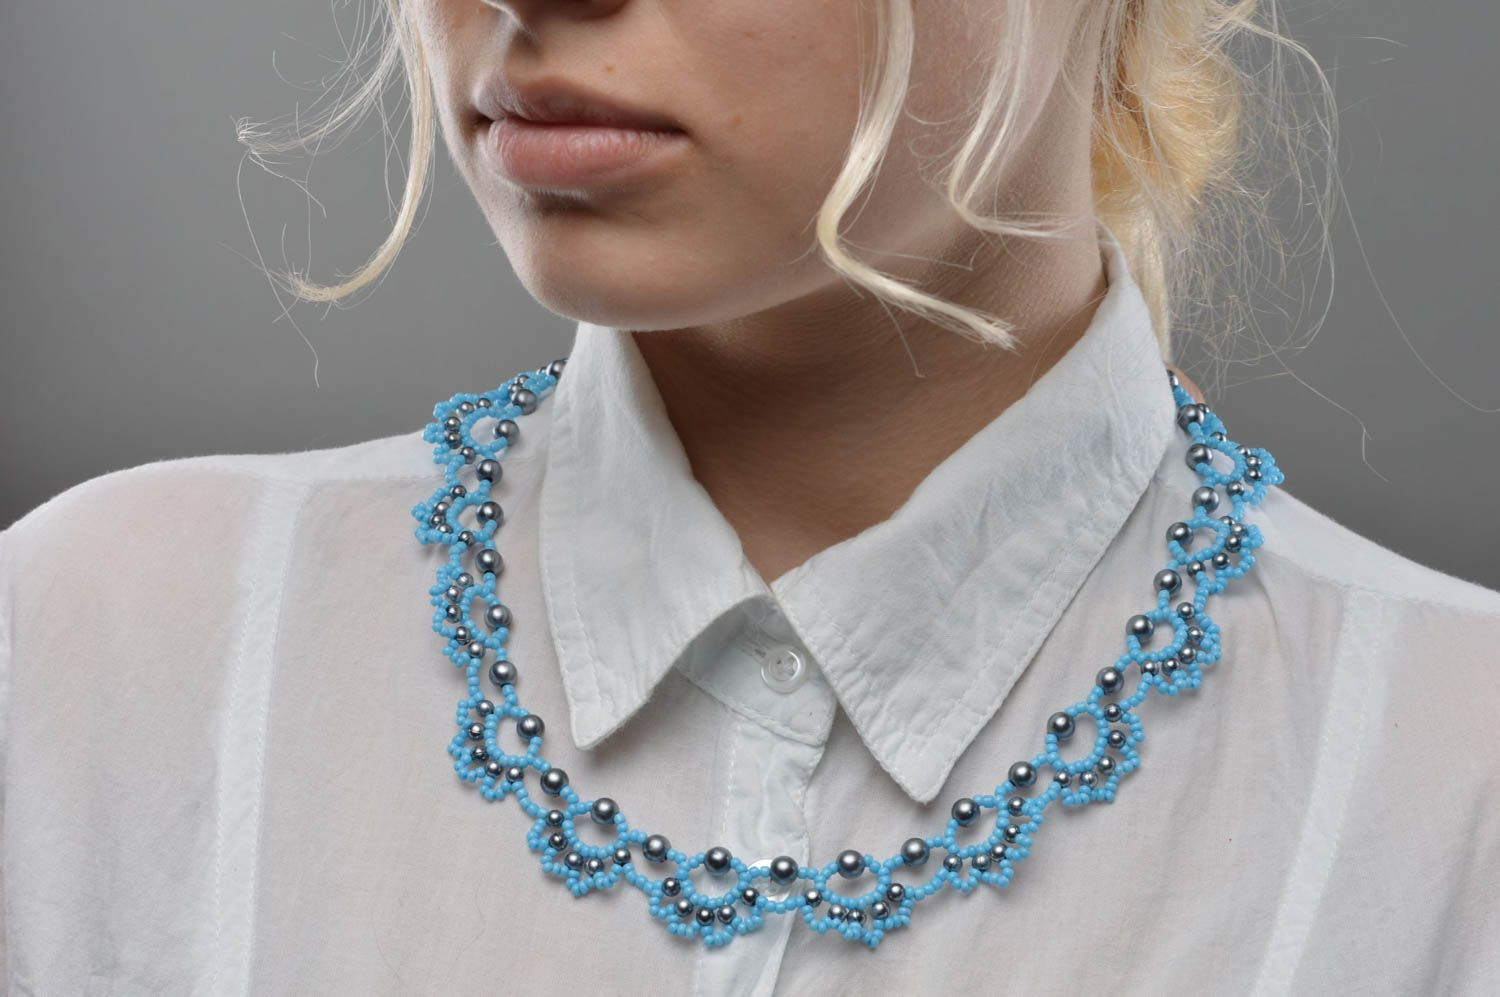 Female handmade blue necklace made of seed and large beads summer jewelry photo 5